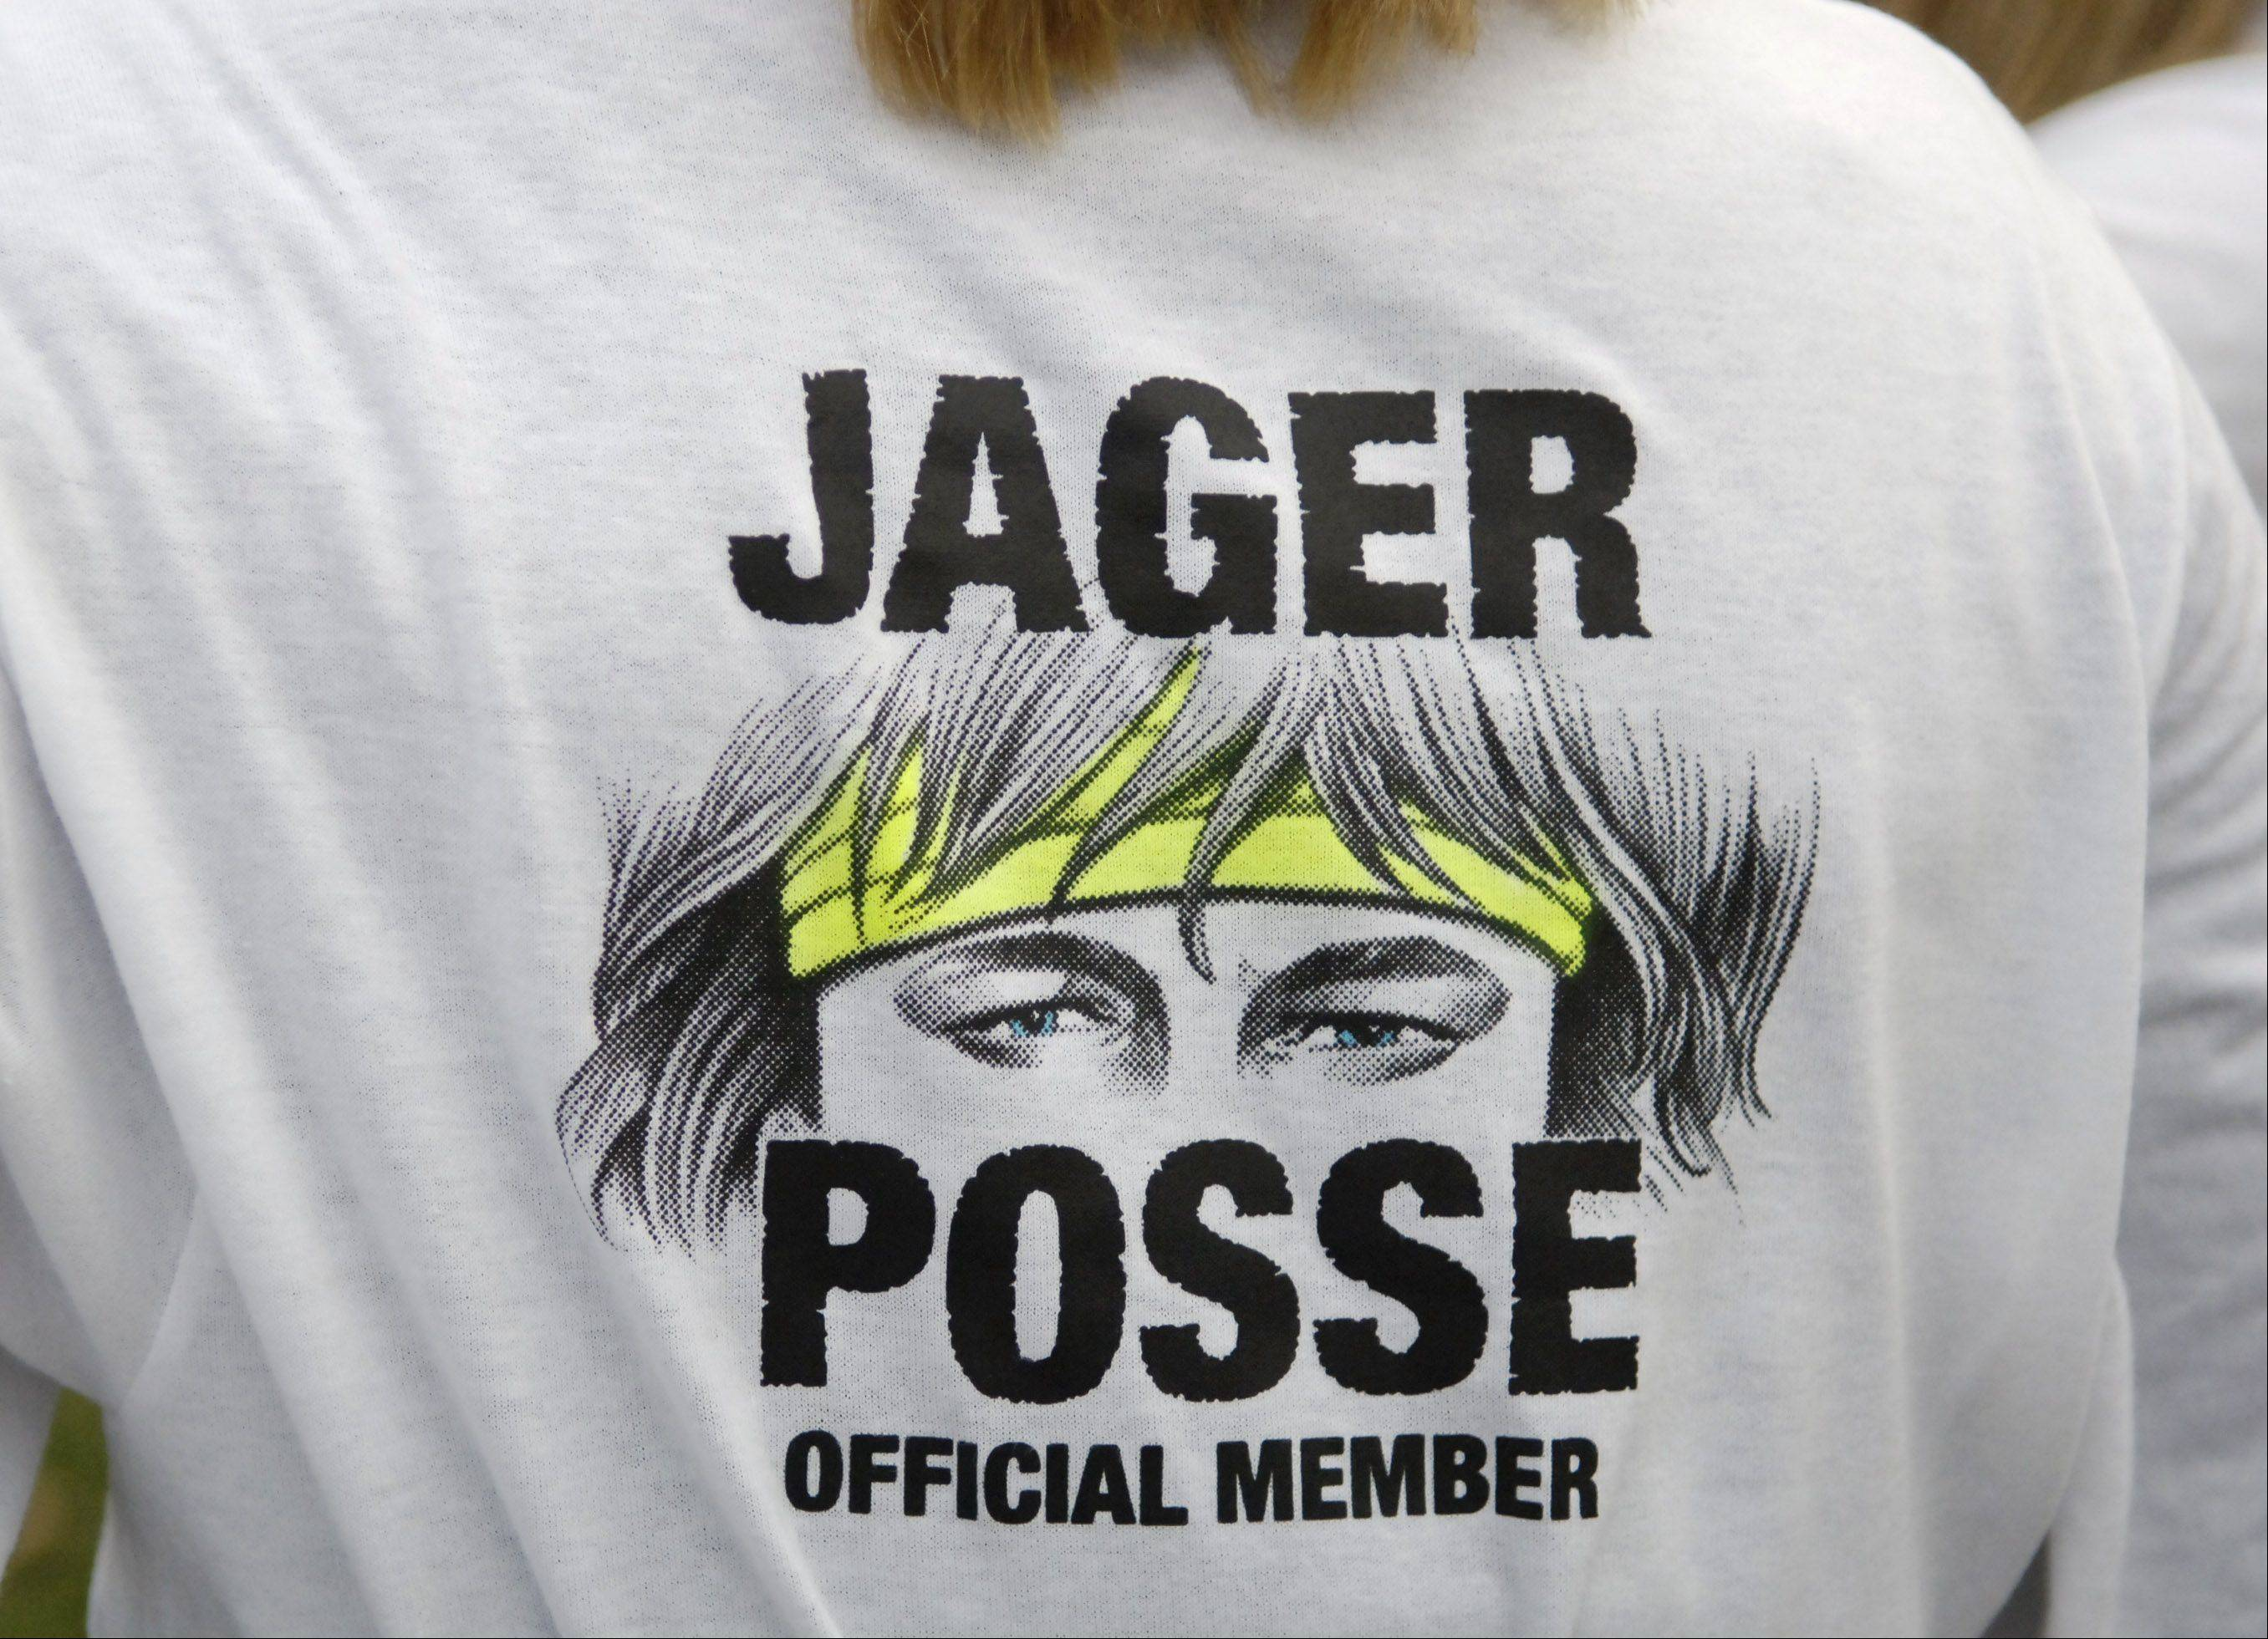 In high school, Evan Jager's hair was his brand. That and his great speed, of course. Friends wore these T-shirts to meets.